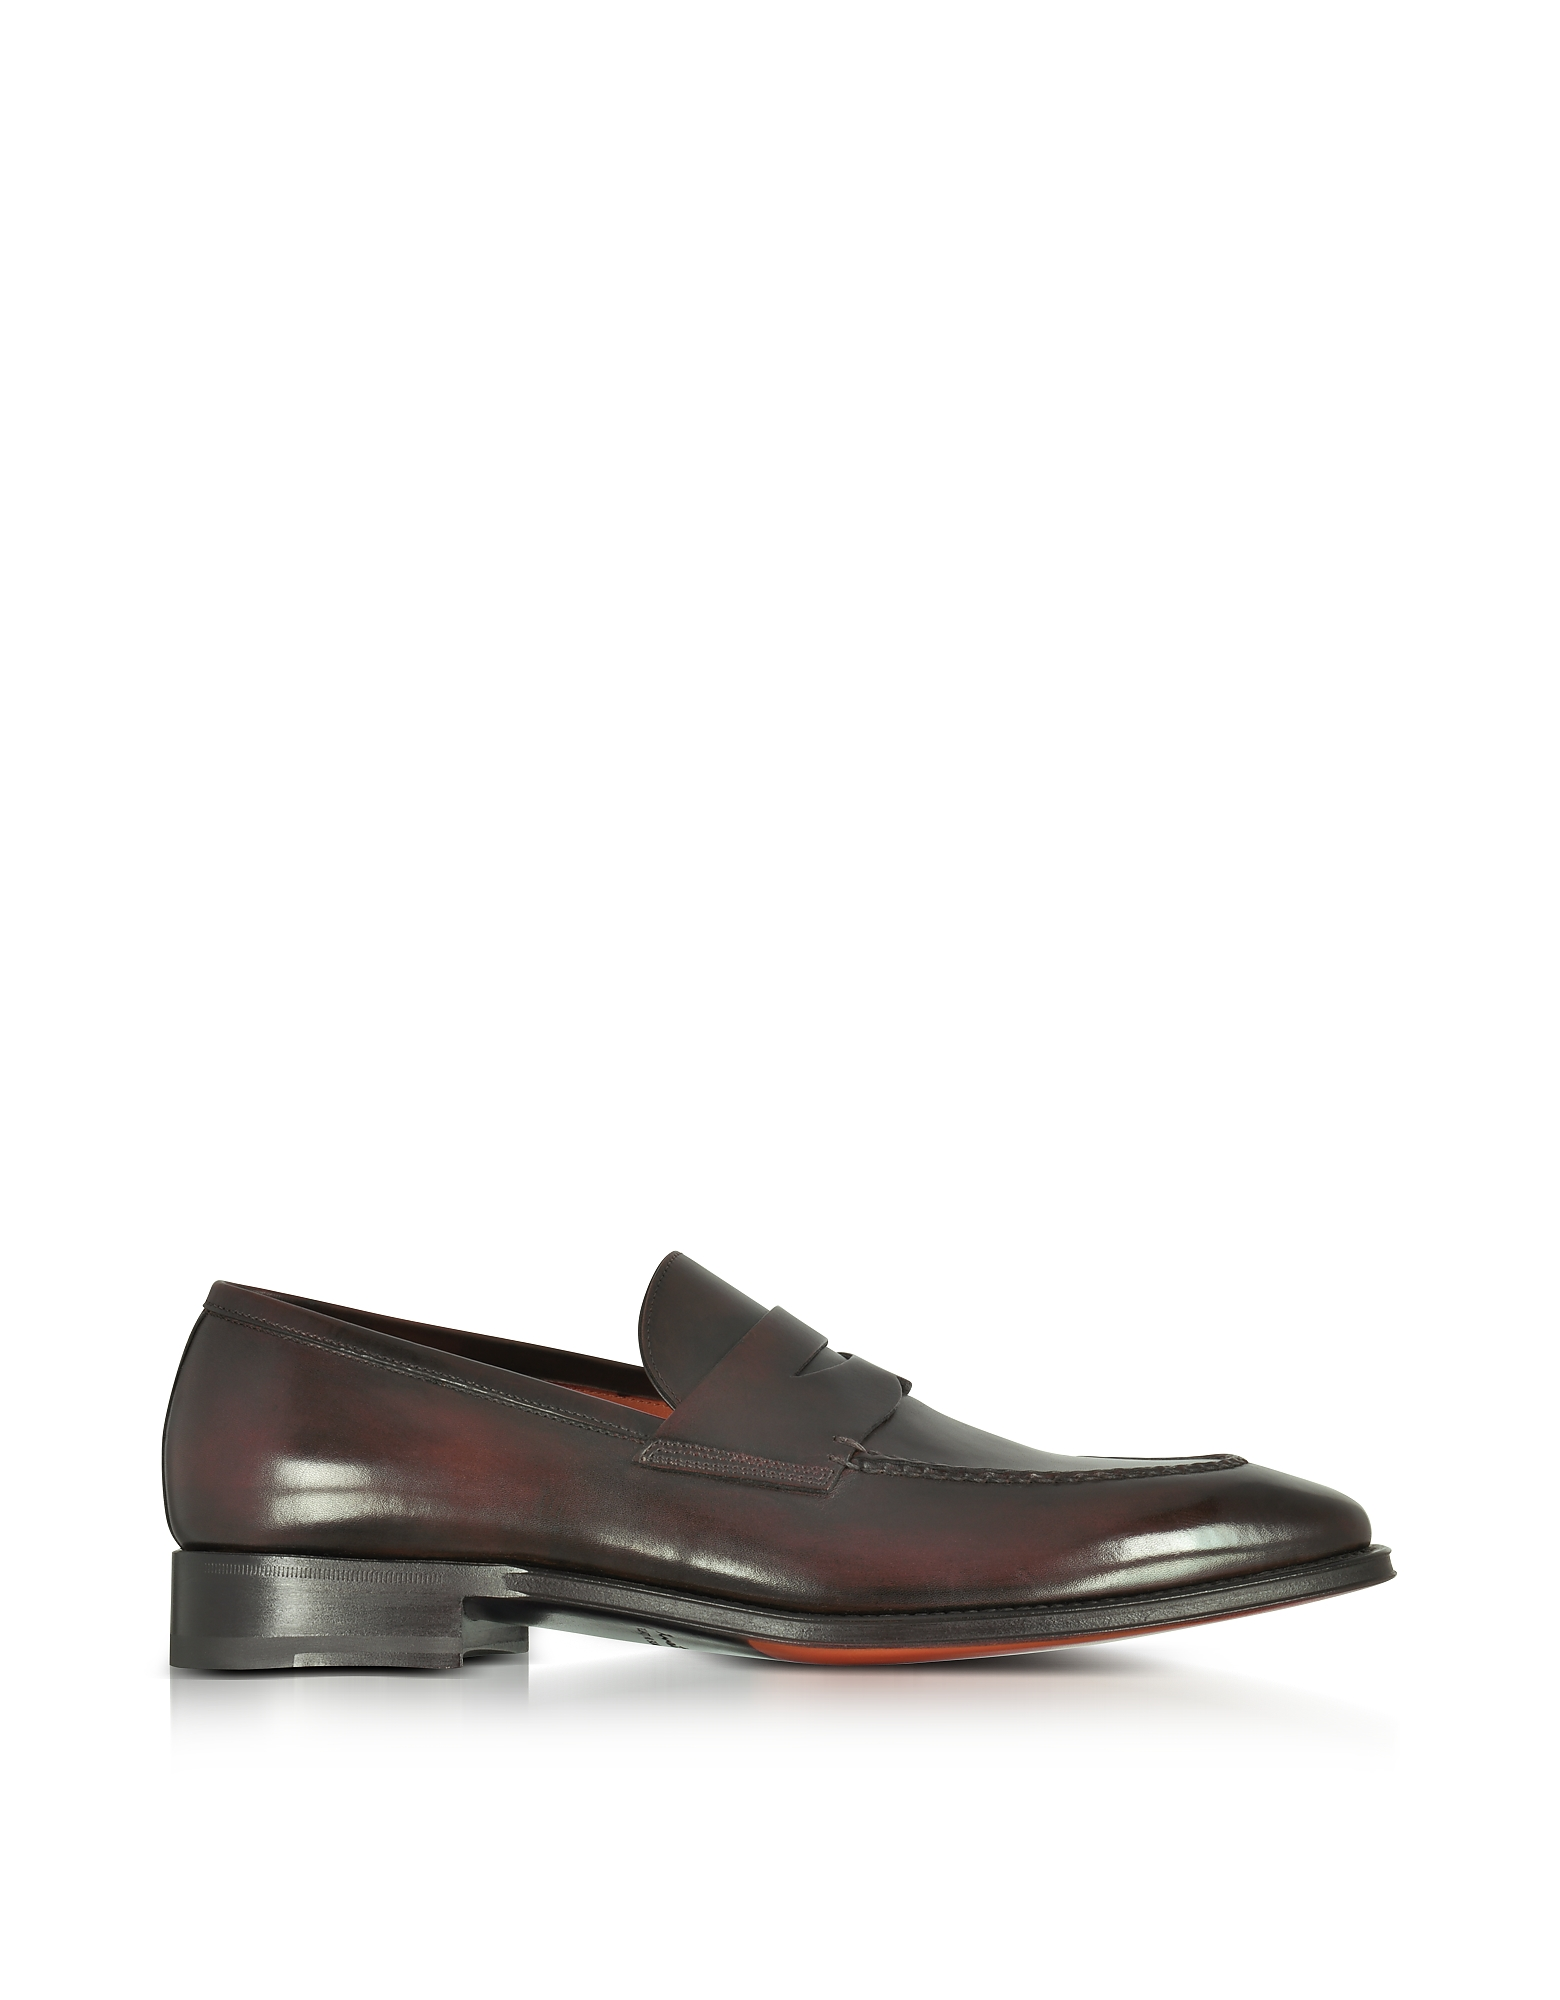 Santoni Shoes, Duke Dark Brown Leather Penny Loafer Shoes